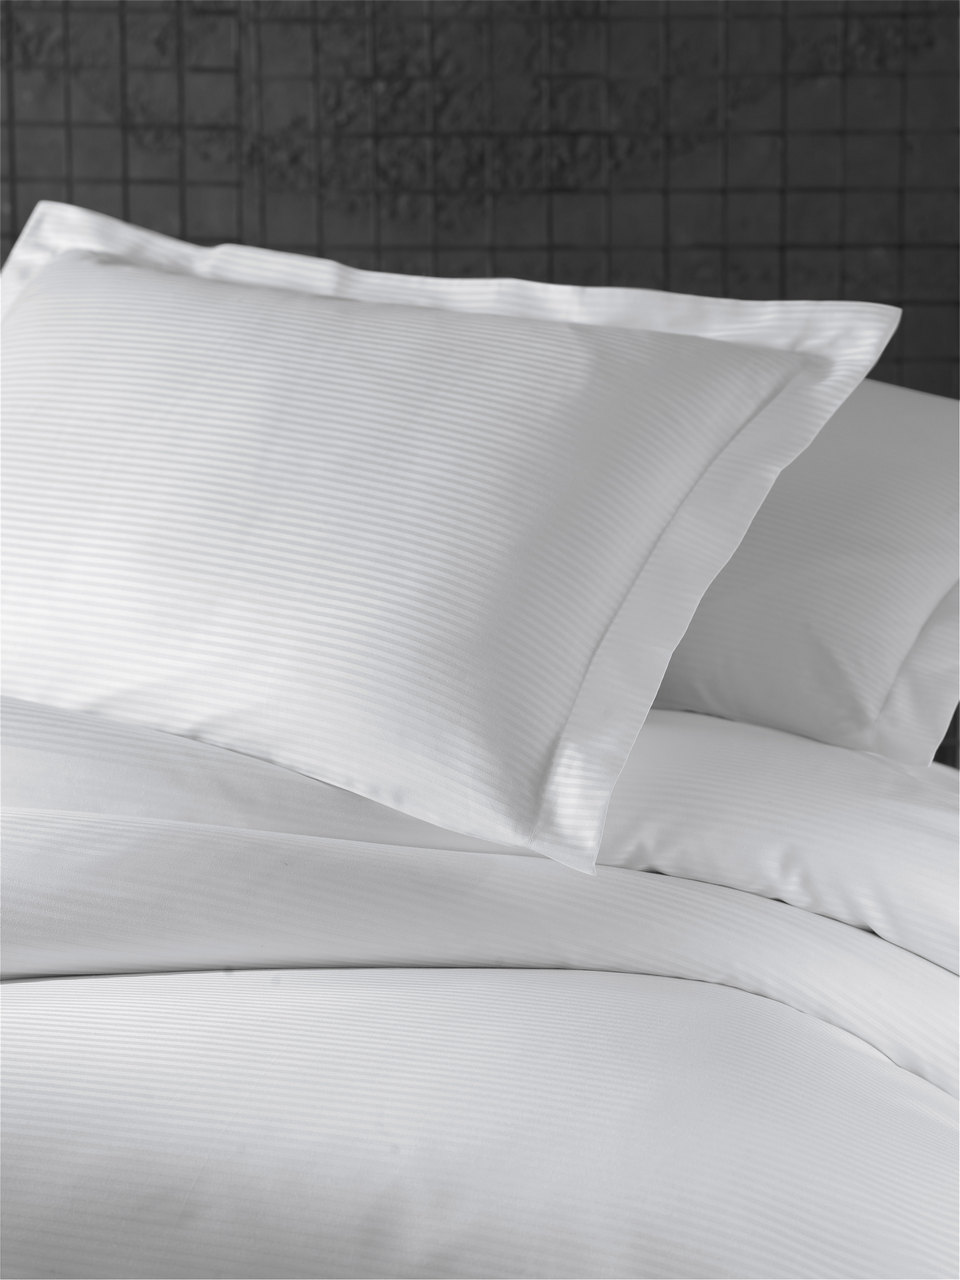 Bed linens for hotel